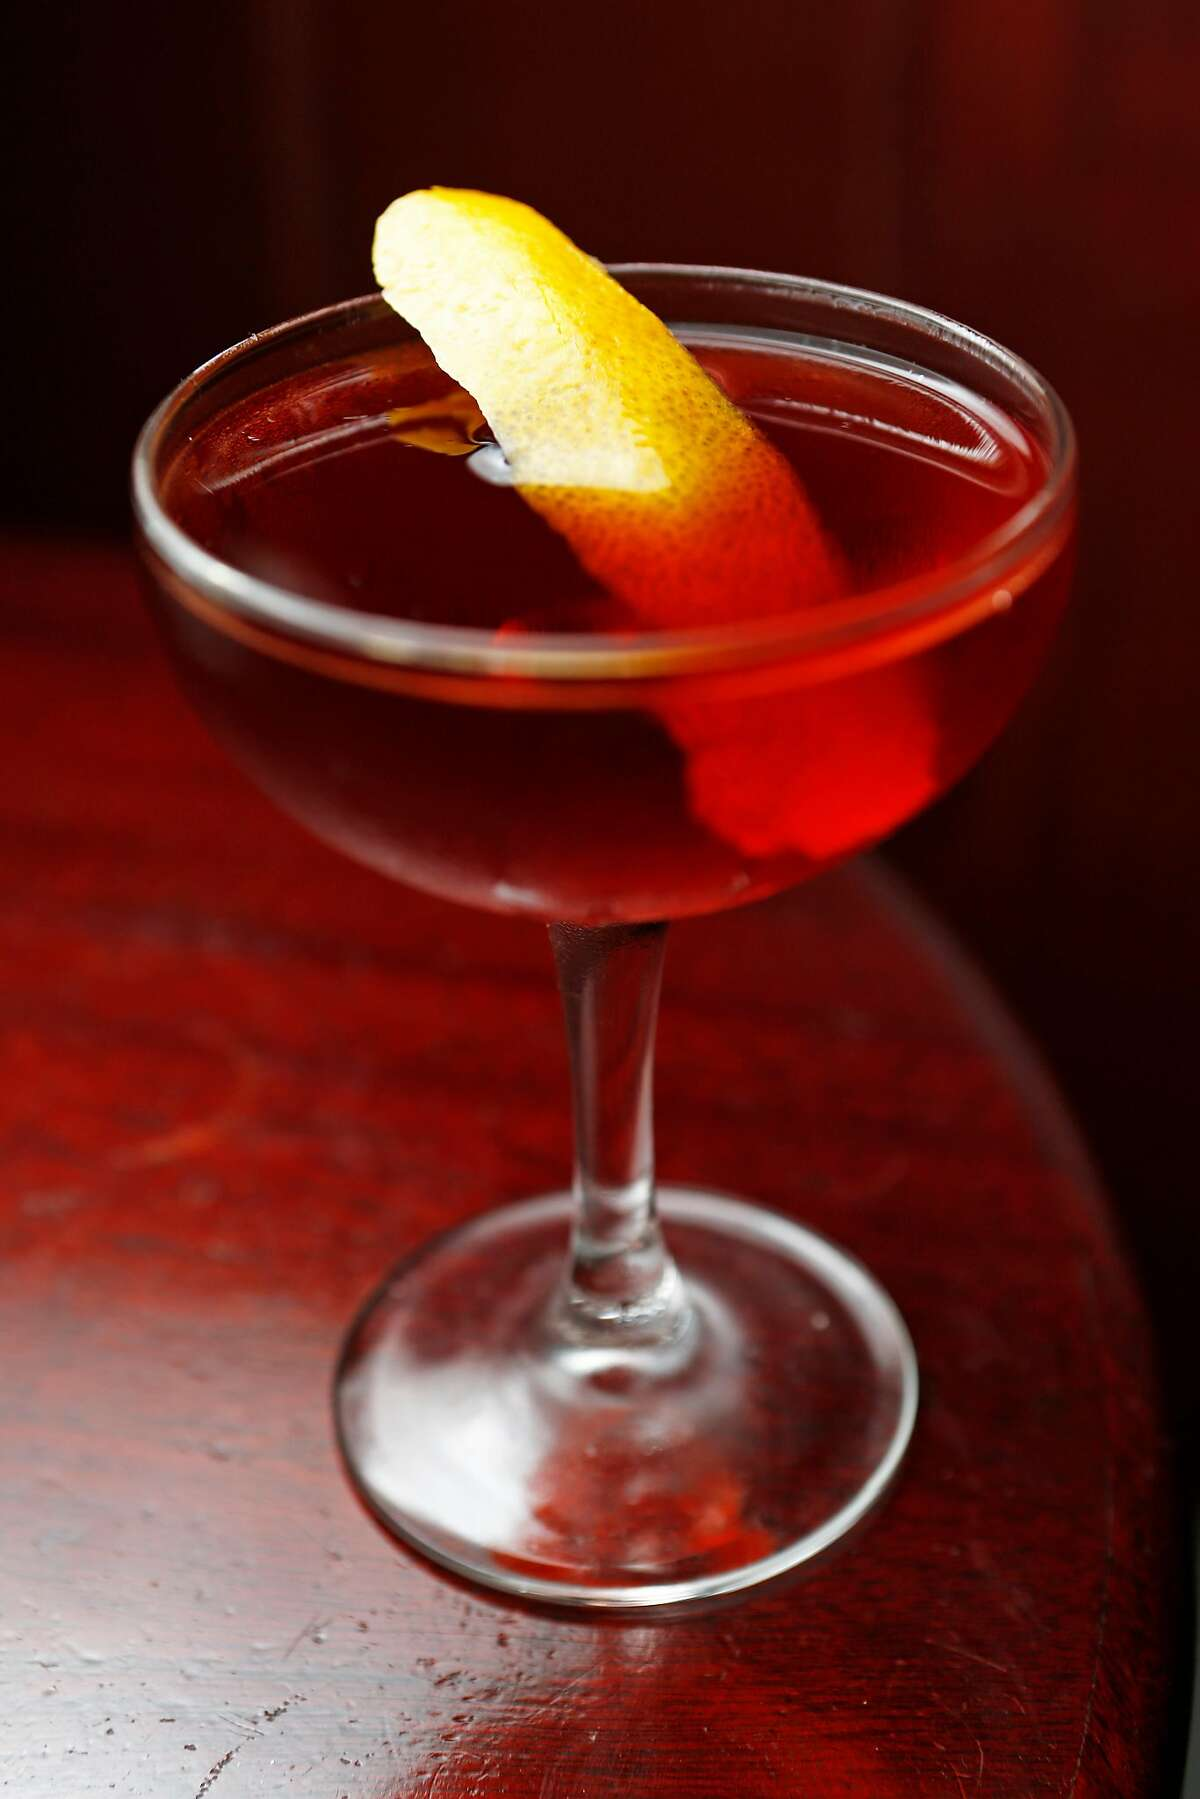 The Boulevardier cocktail at Tony Nik's bar and lounge on Wednesday, Nov. 28, 2018, in San Francisco, Calif. Tony Nik's is located at 1534 Stockton St.